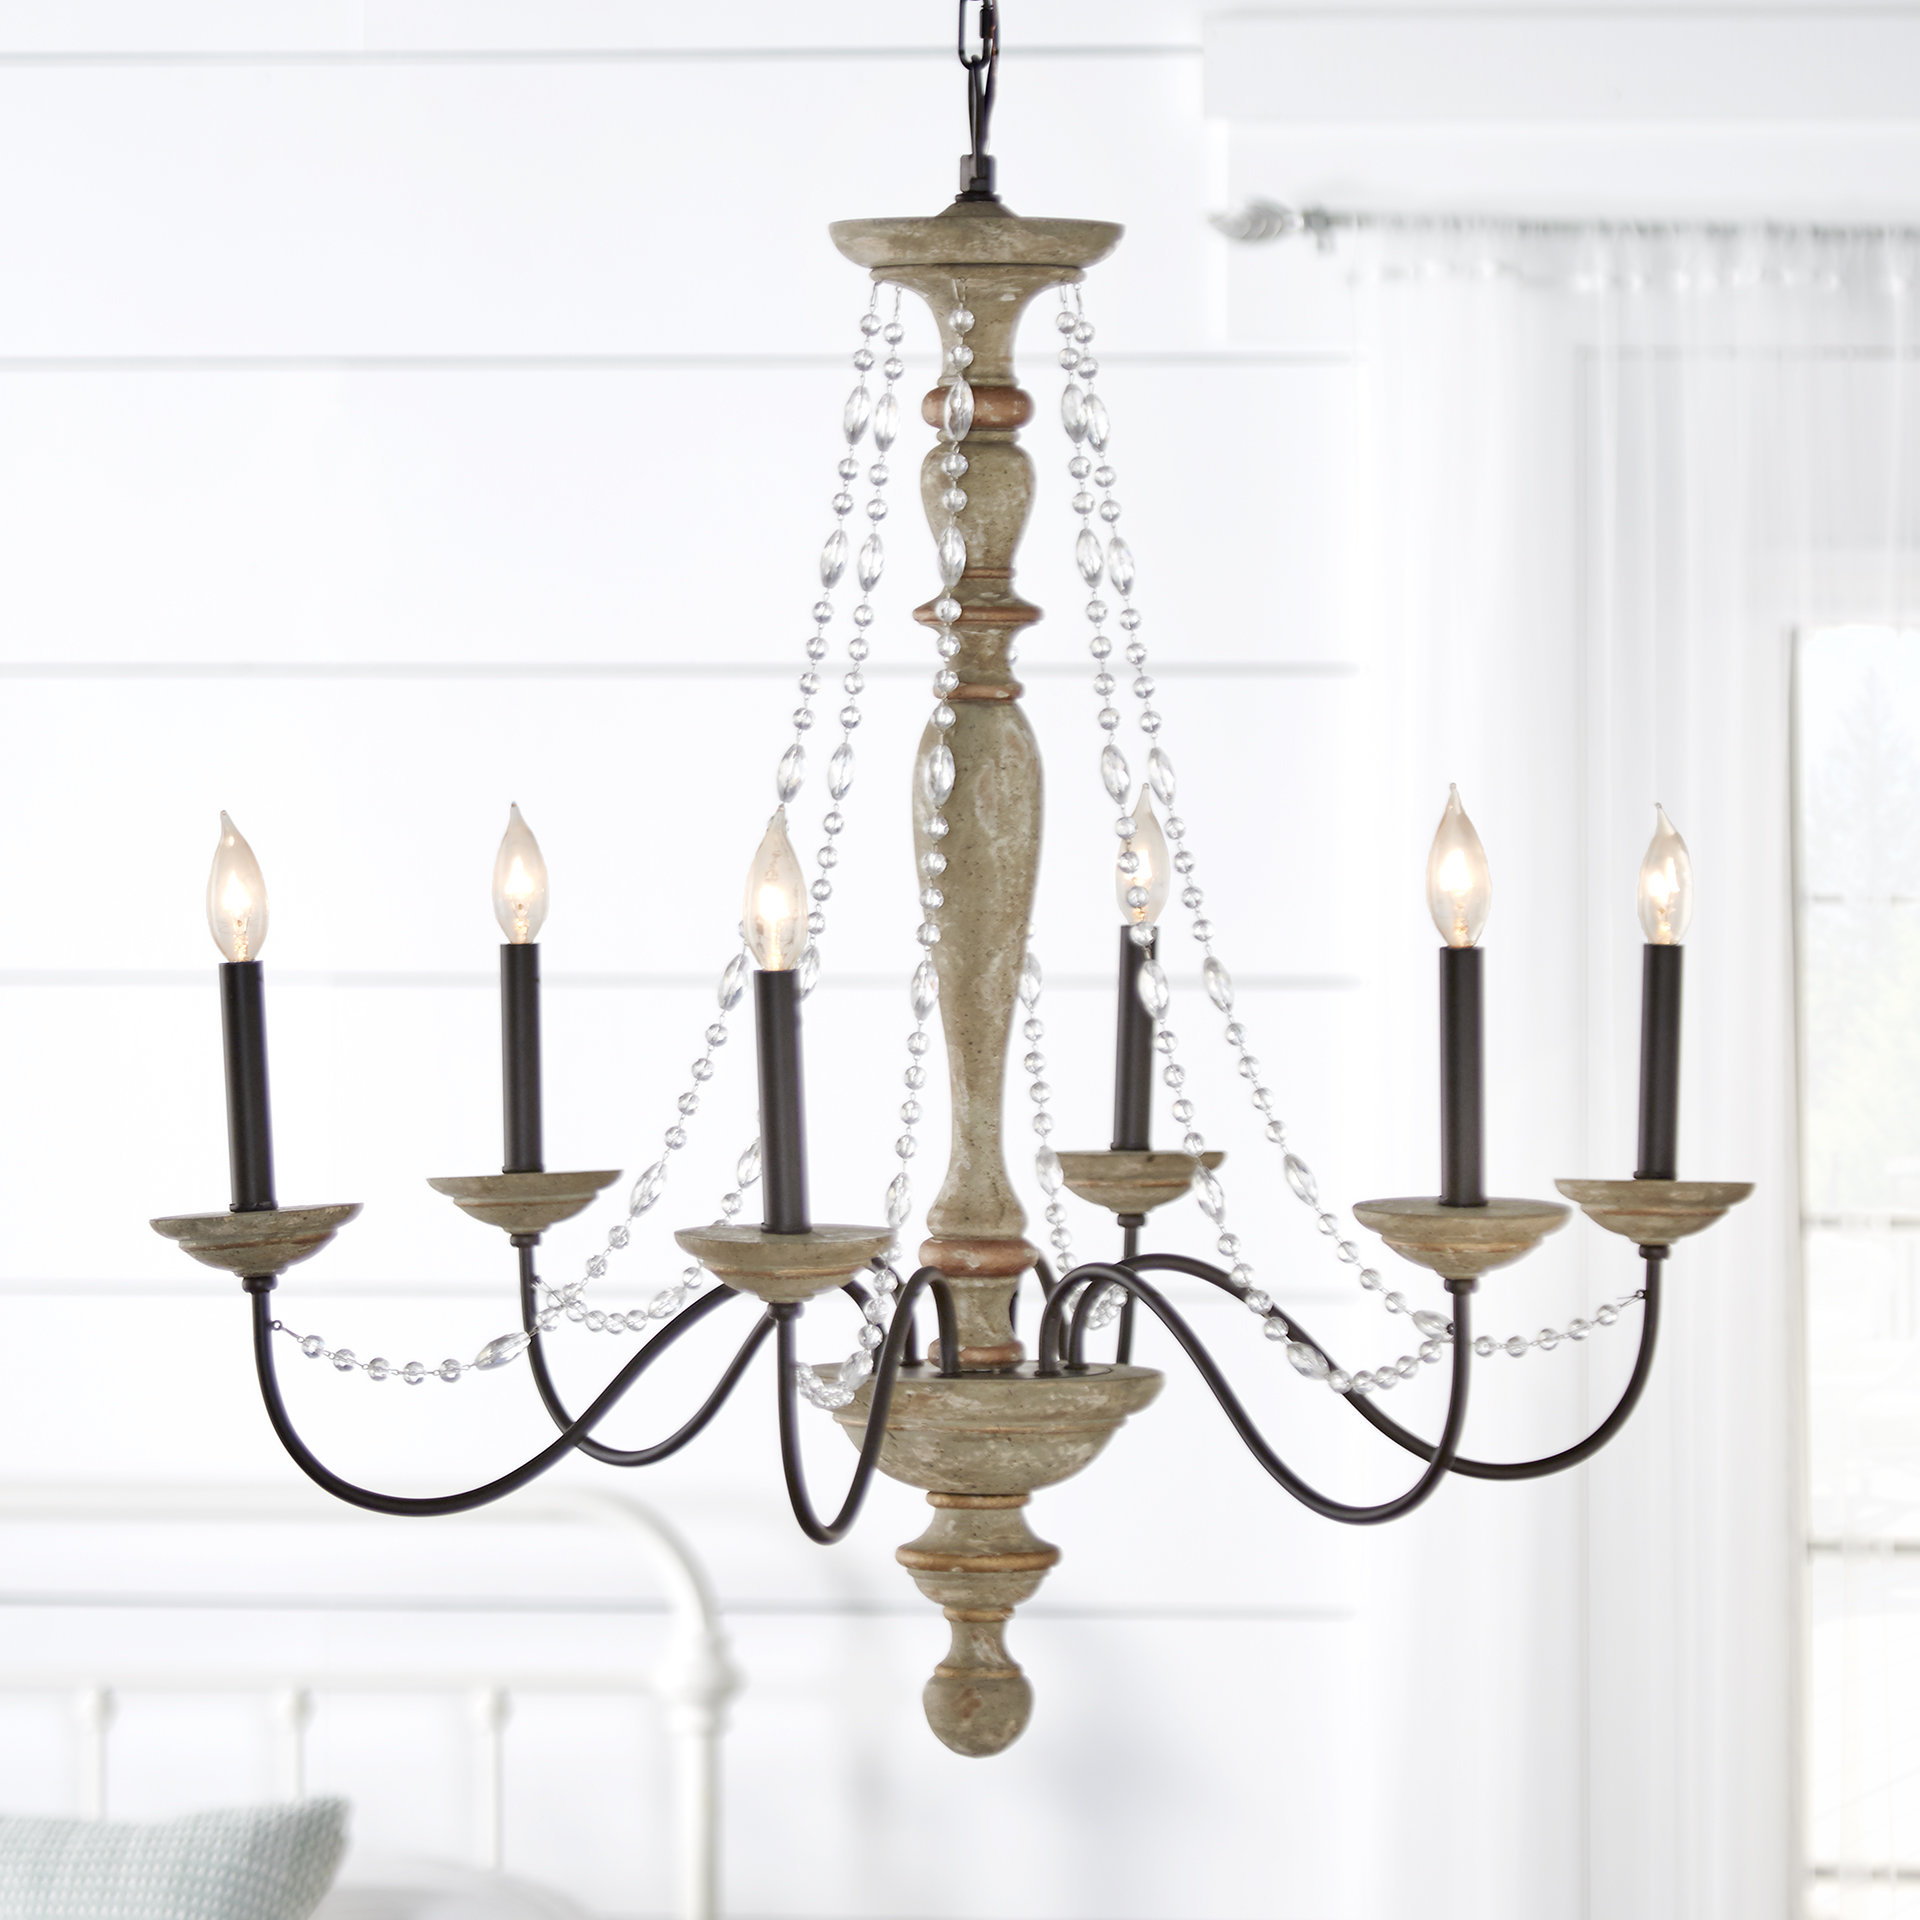 Three Posts Brennon 6 Light Candle Style Chandelier Pertaining To Hamza 6 Light Candle Style Chandeliers (View 6 of 30)